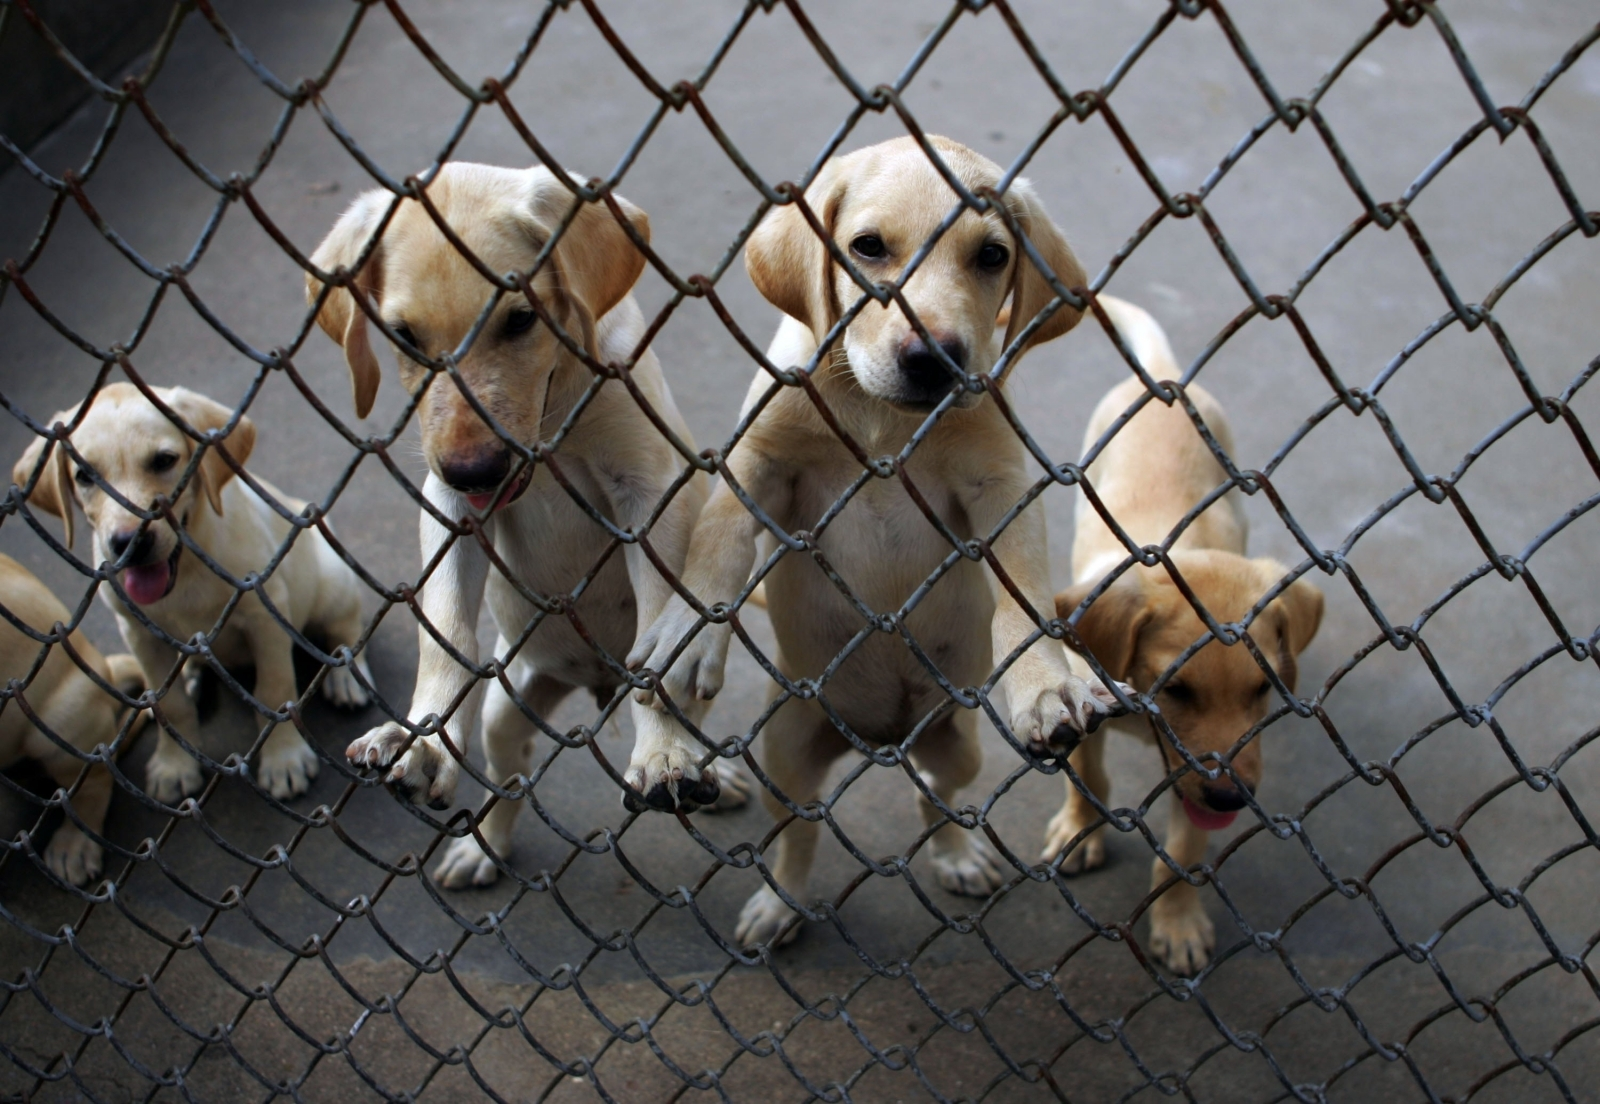 Warning Over Illegal Puppy Trade This Christmas